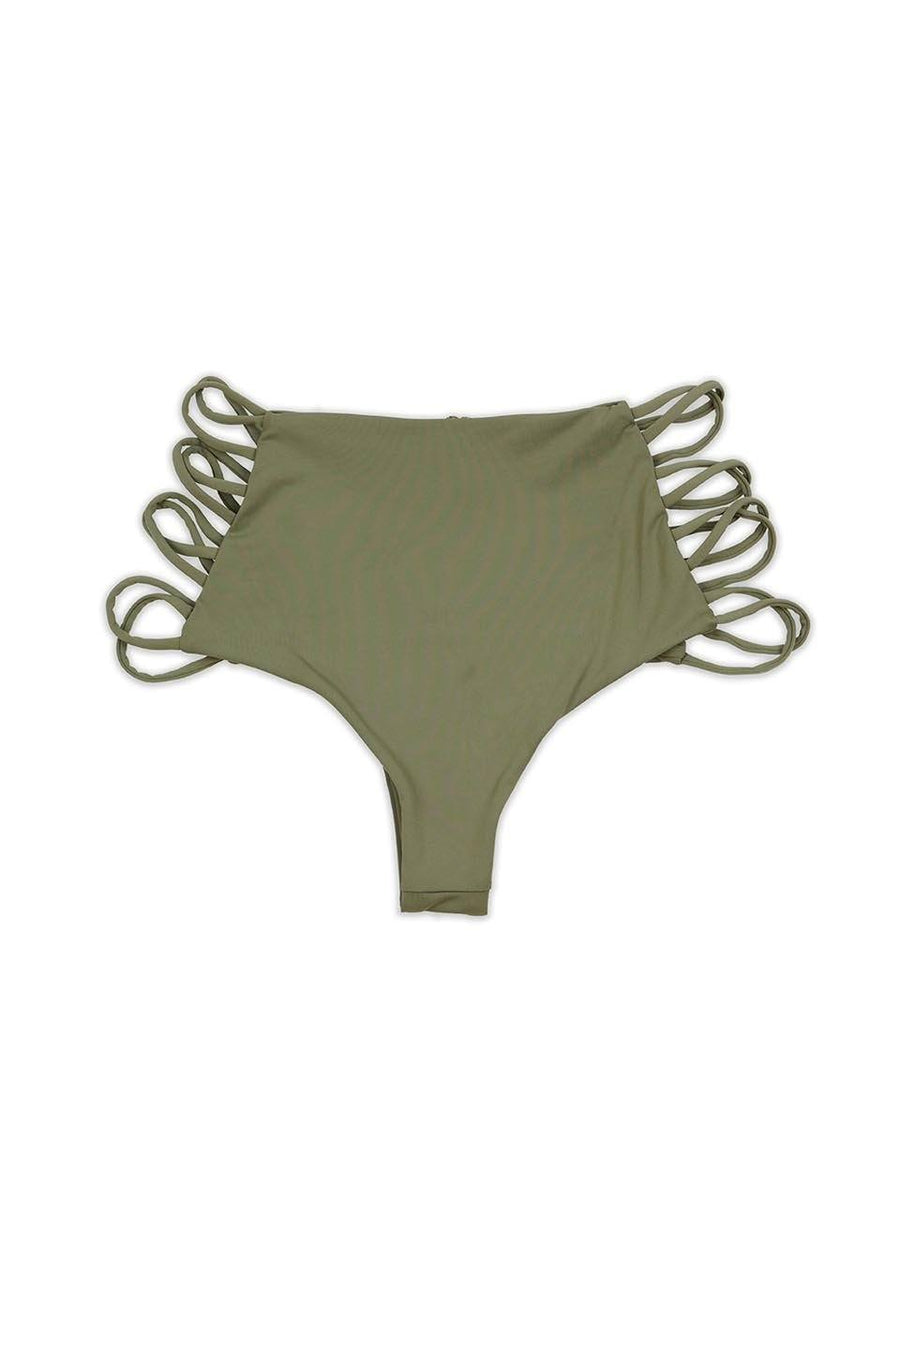 Taupe Seamless Strappy High Waist Cheeky BOTTOM Front - Dippin' Daisy's Swimwear